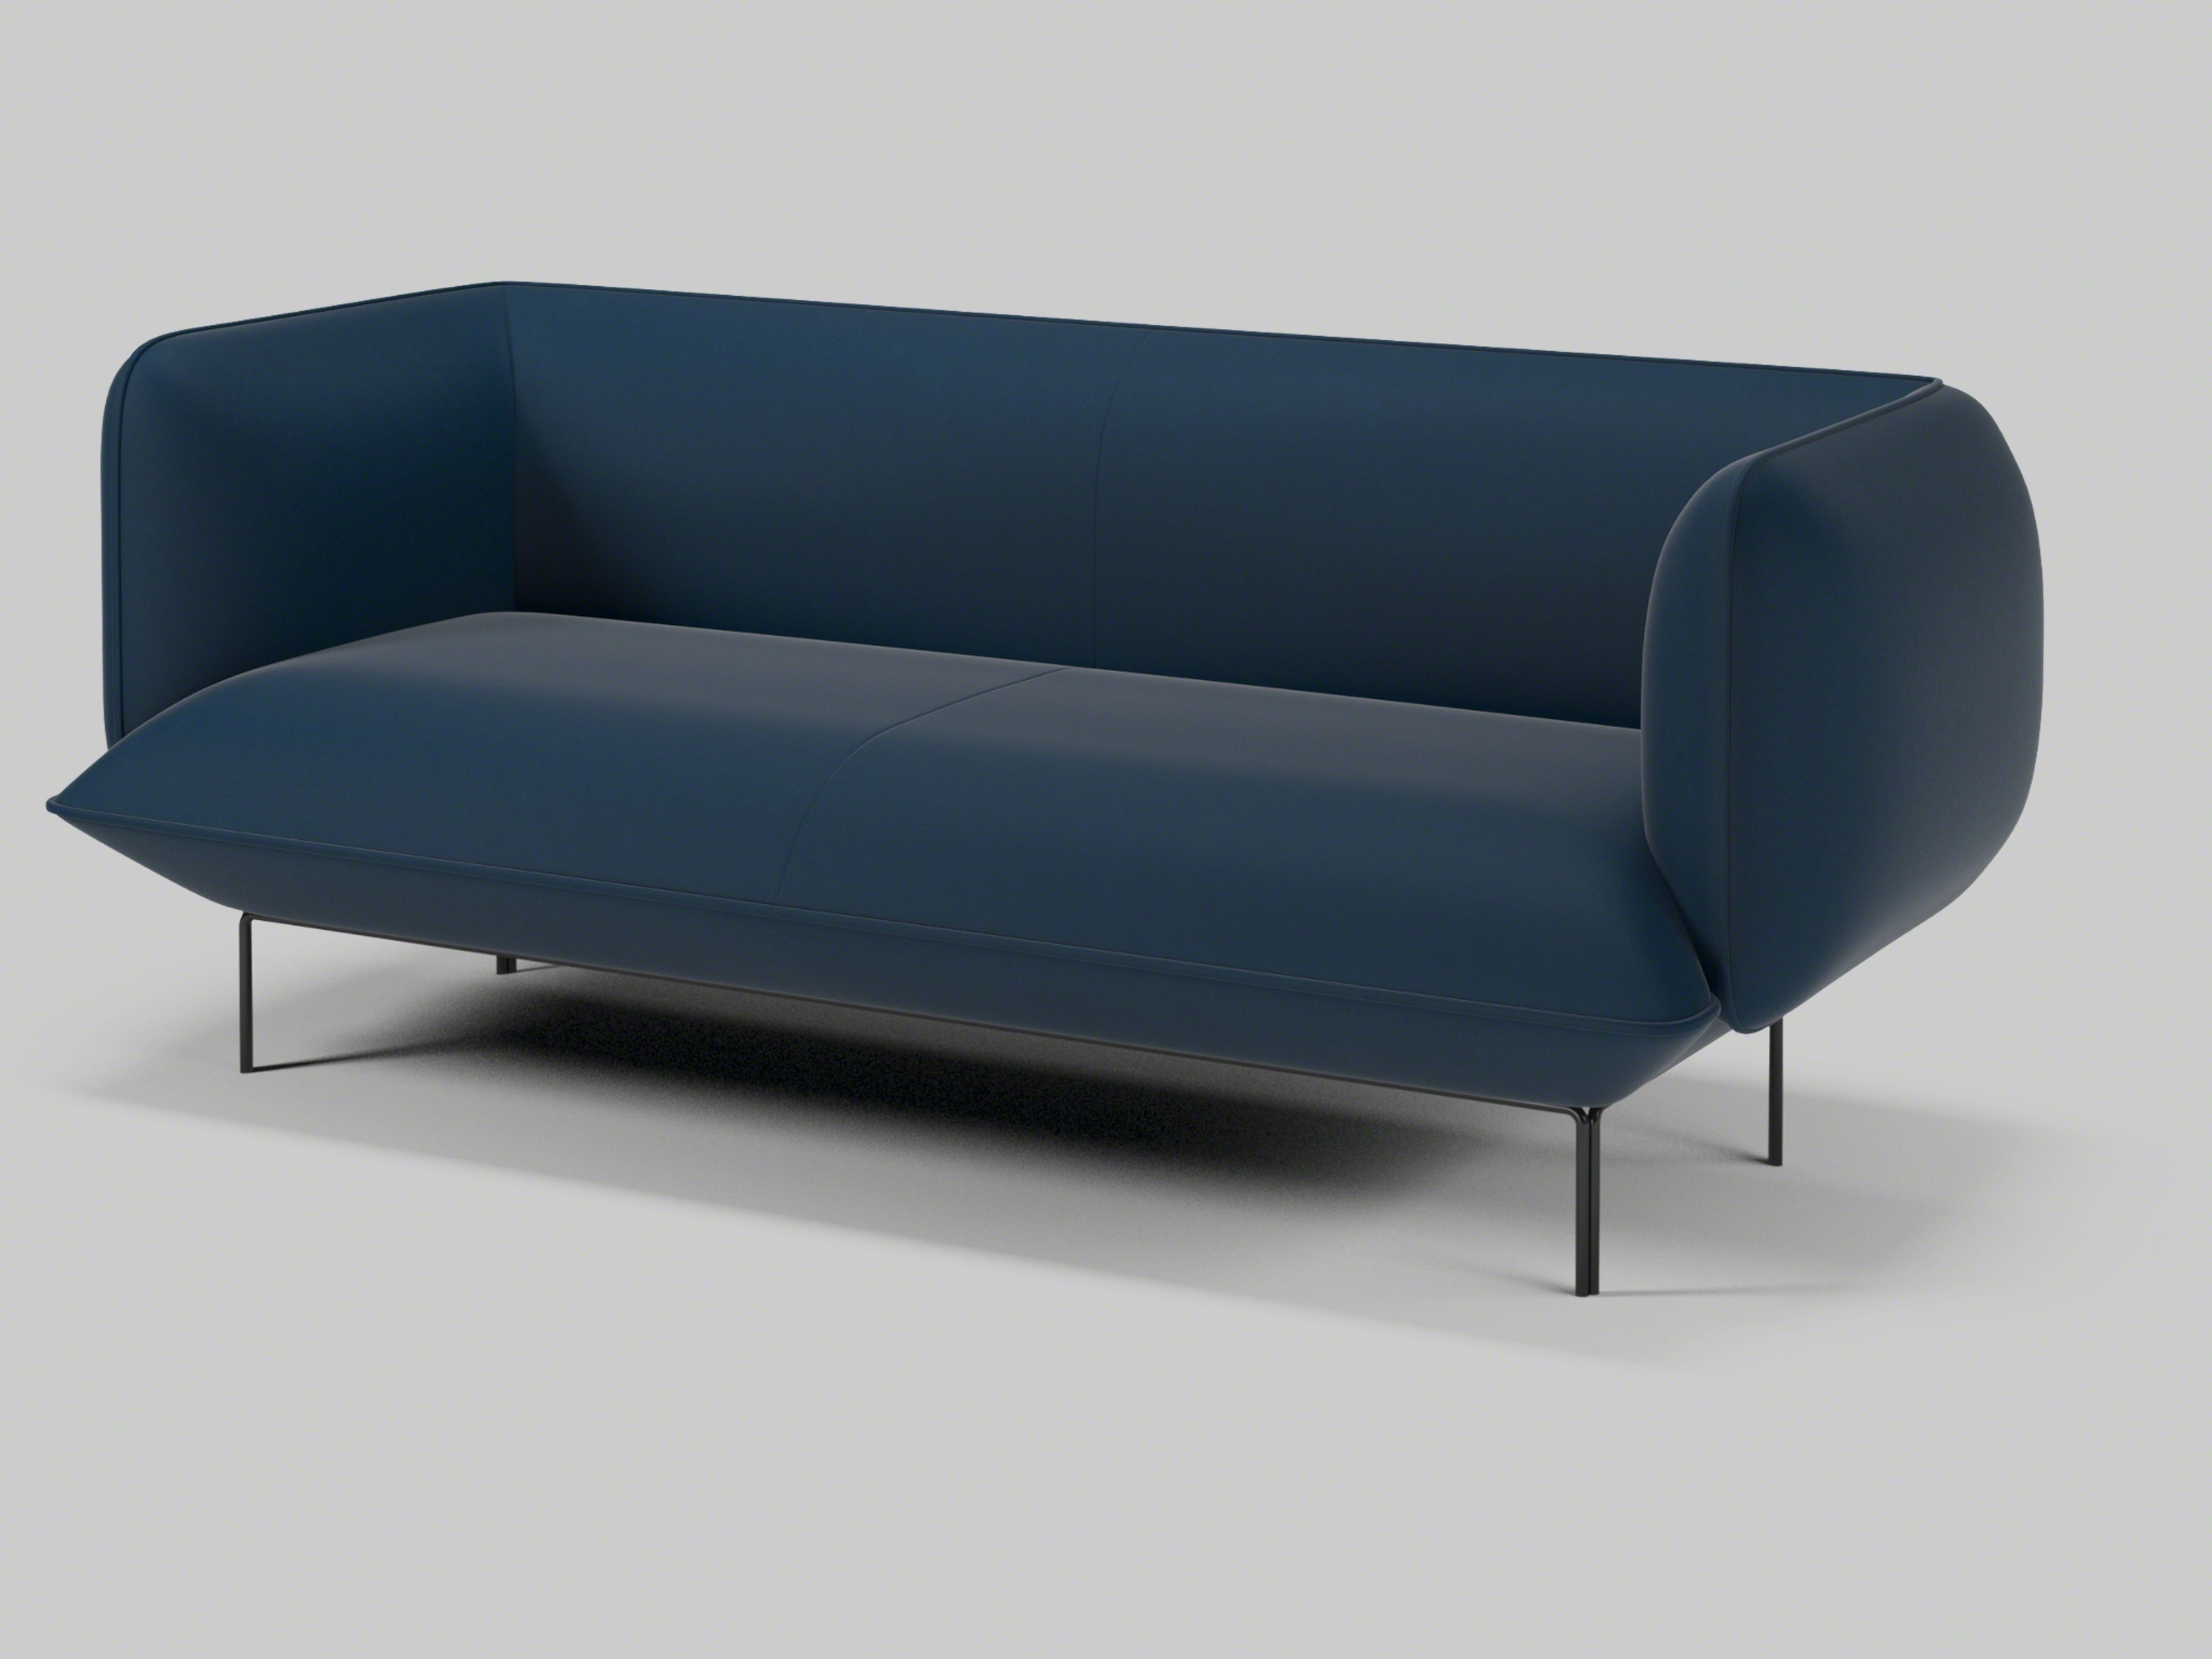 bolia outlet sofa stonewood bison leather cloud baci living room